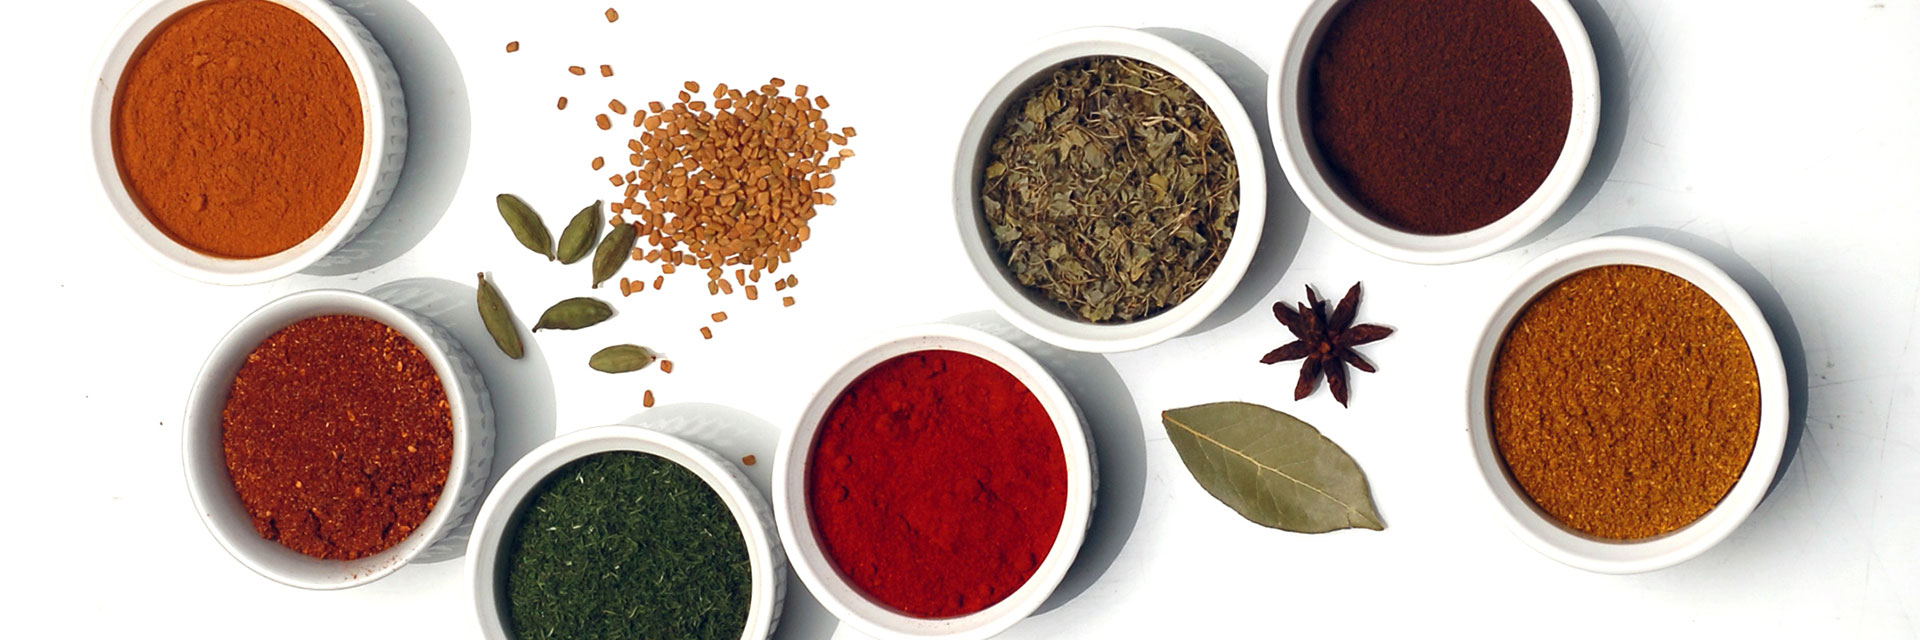 spices-food